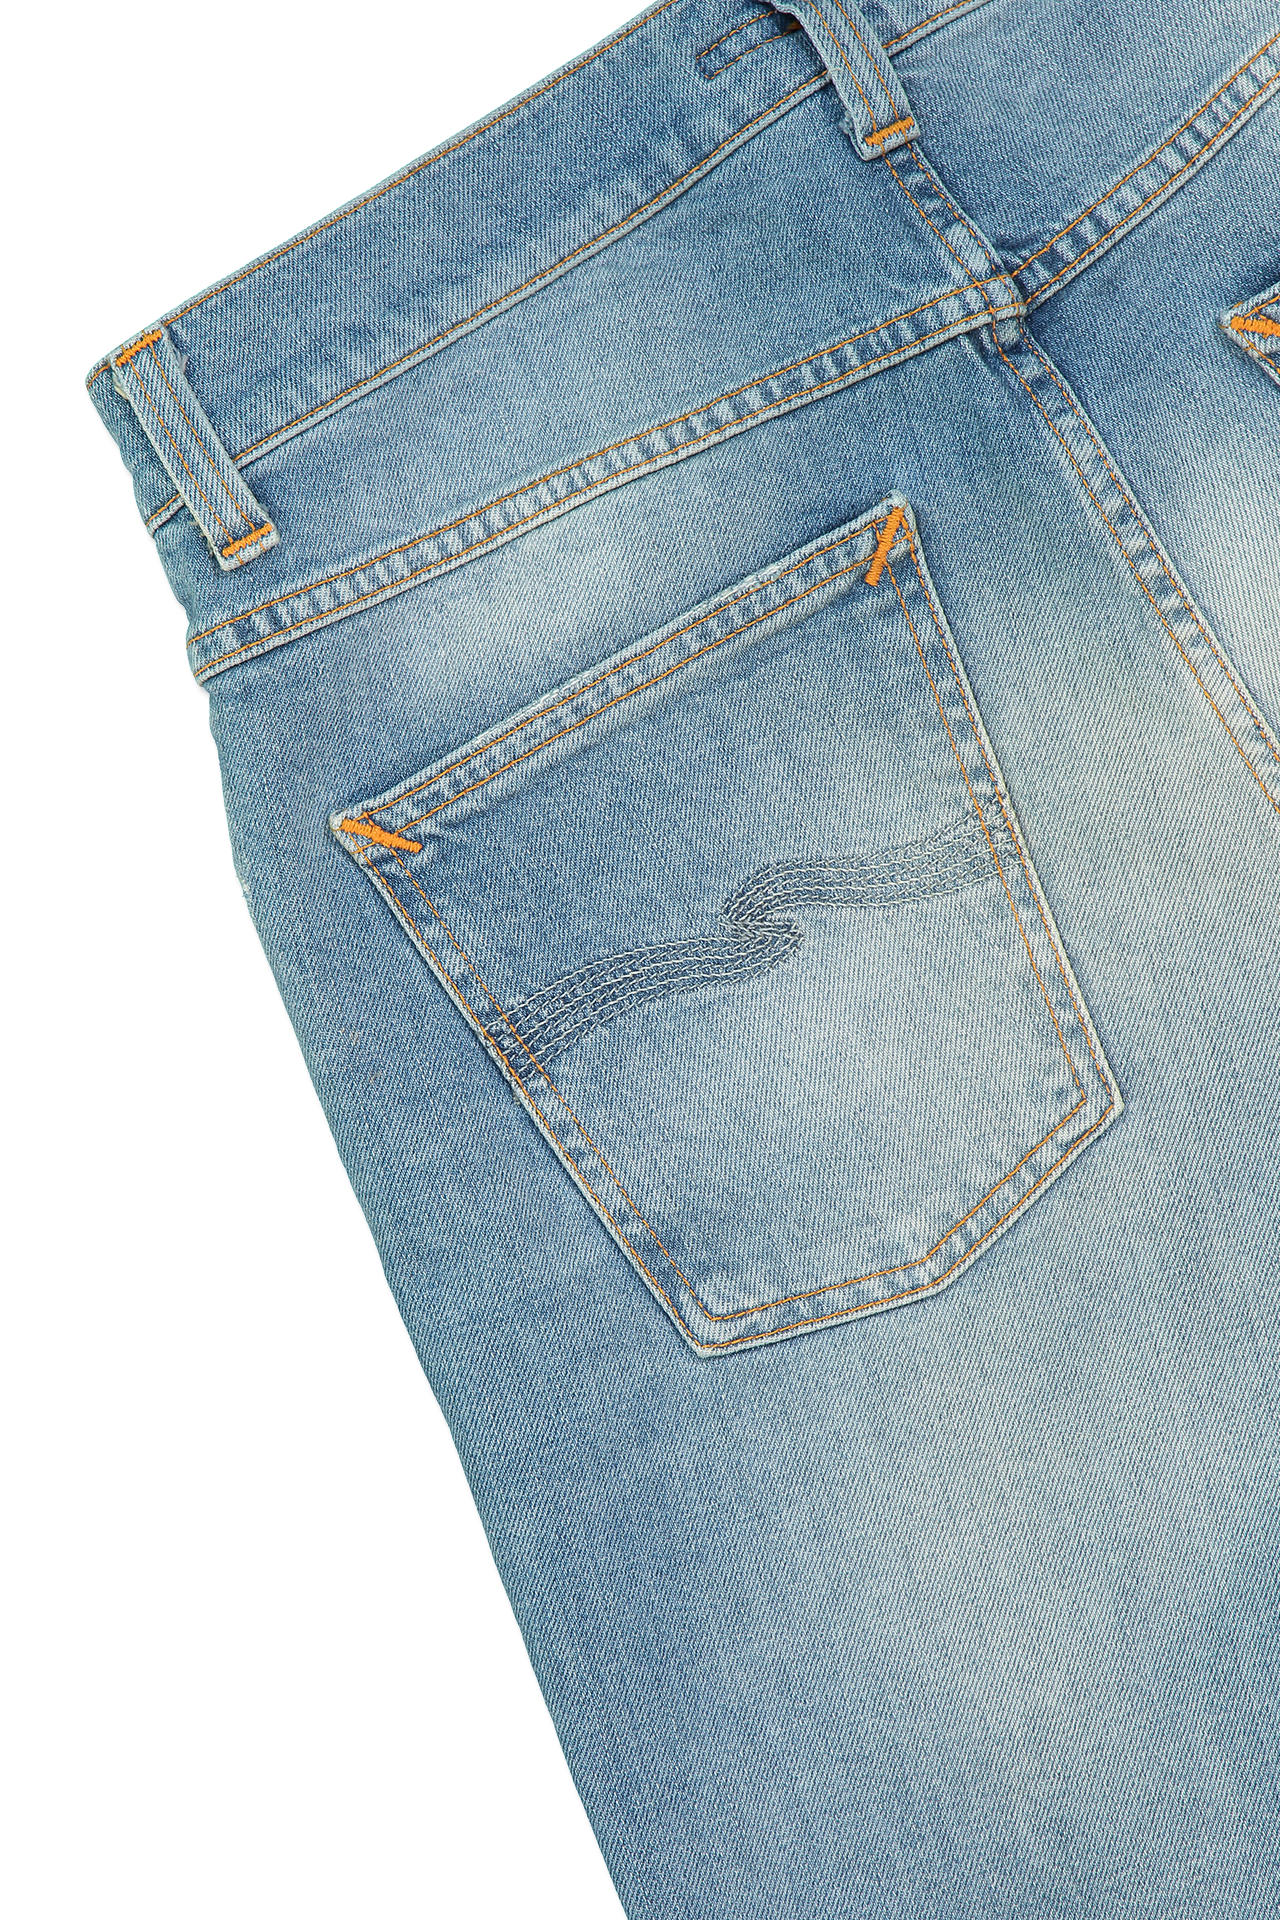 Back pocket detail image of Nudie Jeans Lean Dean Broken Summer